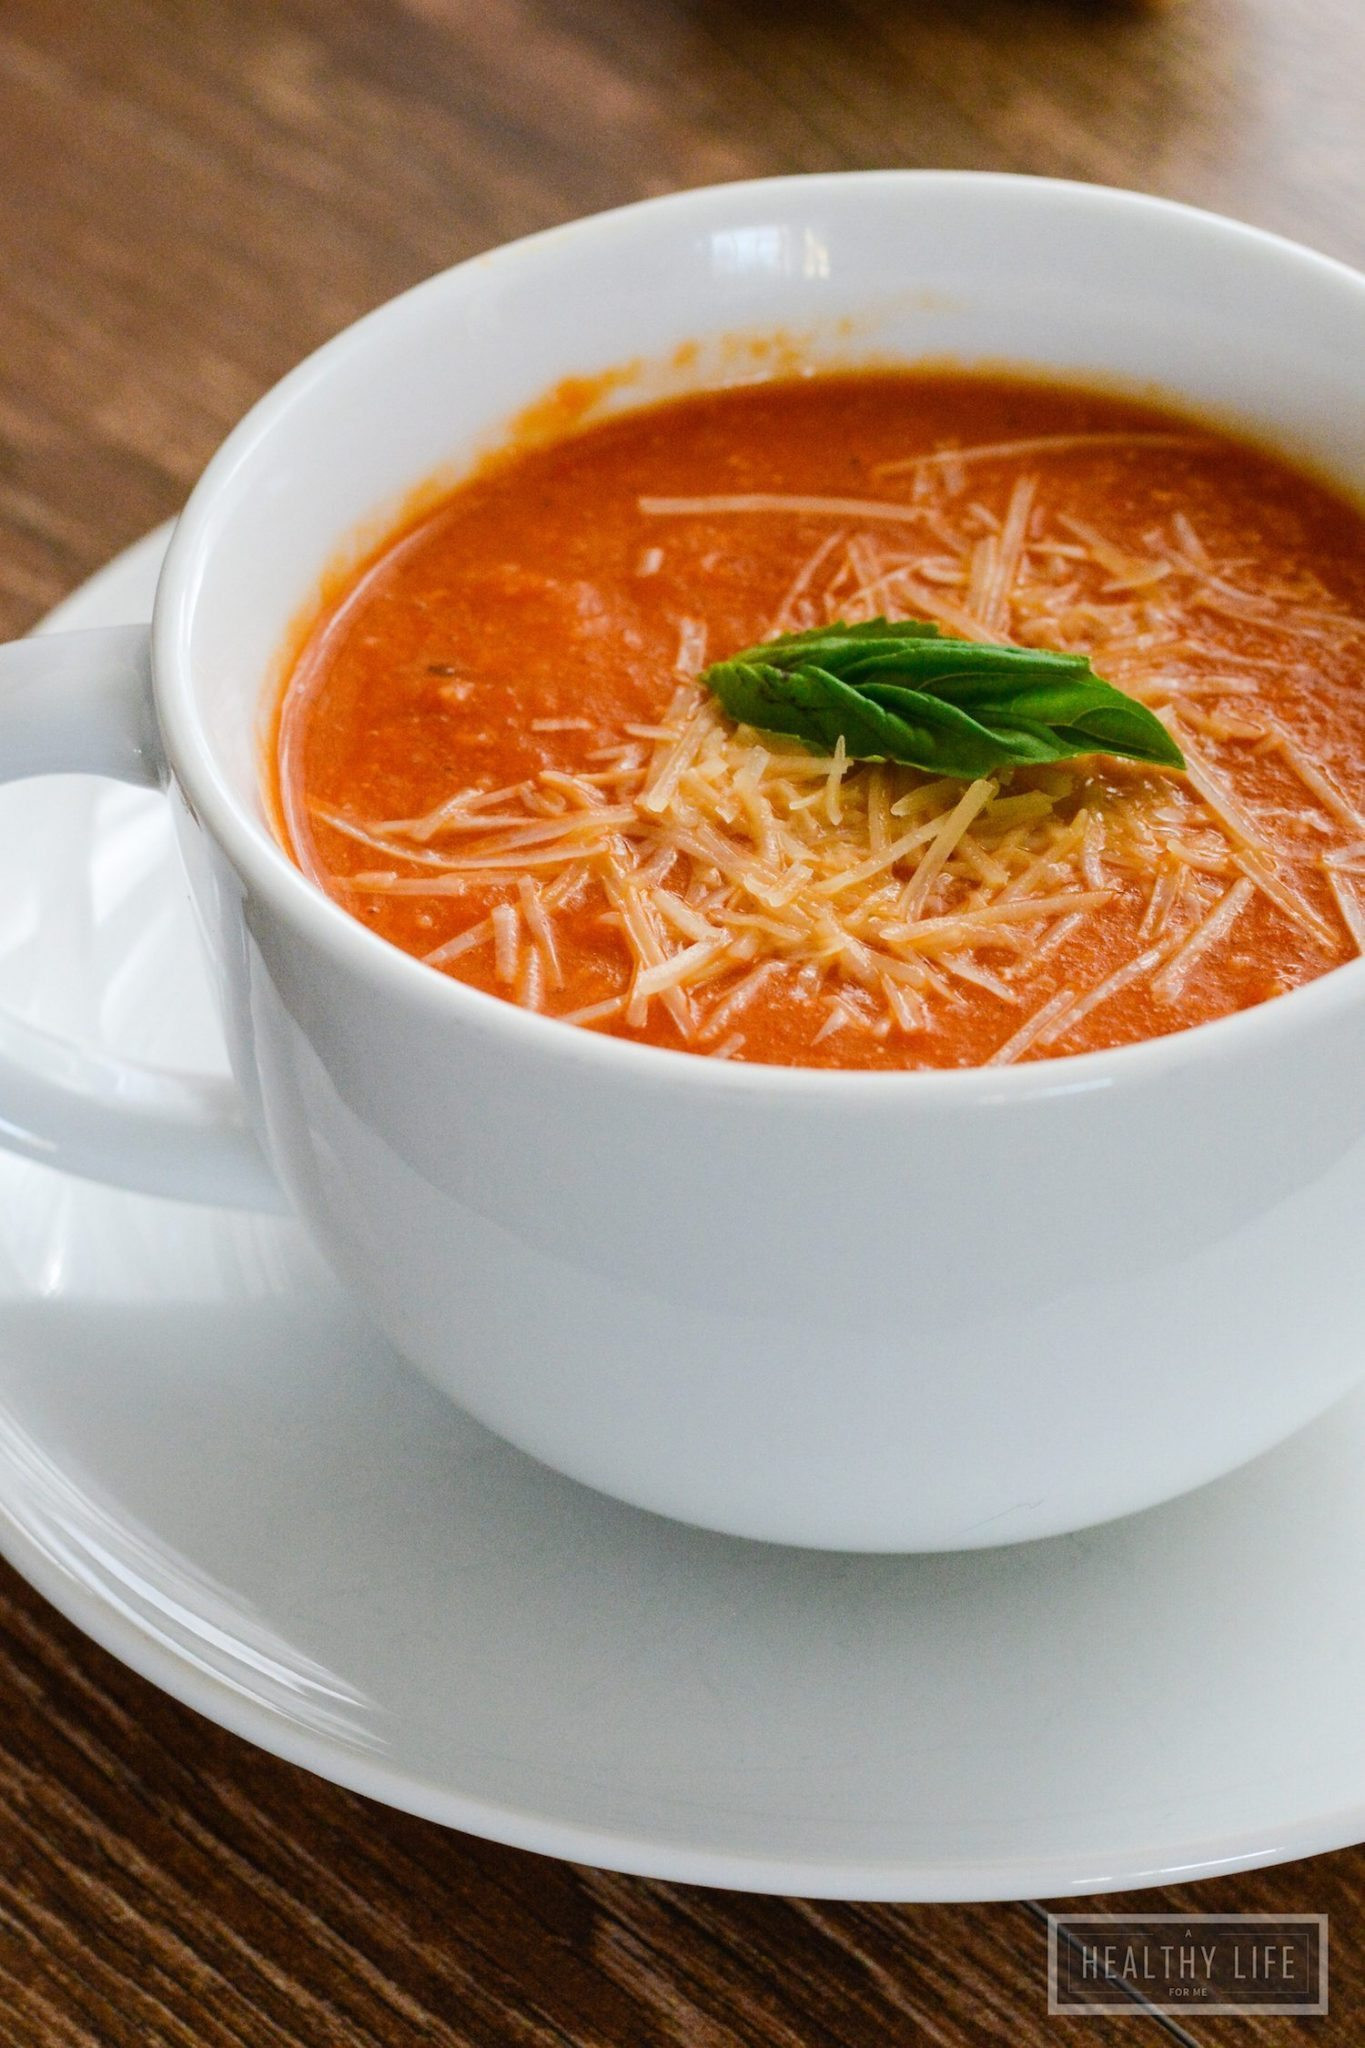 Healthy Tomato Bisque Recipe  Tomato Bisque A Healthy Life For Me